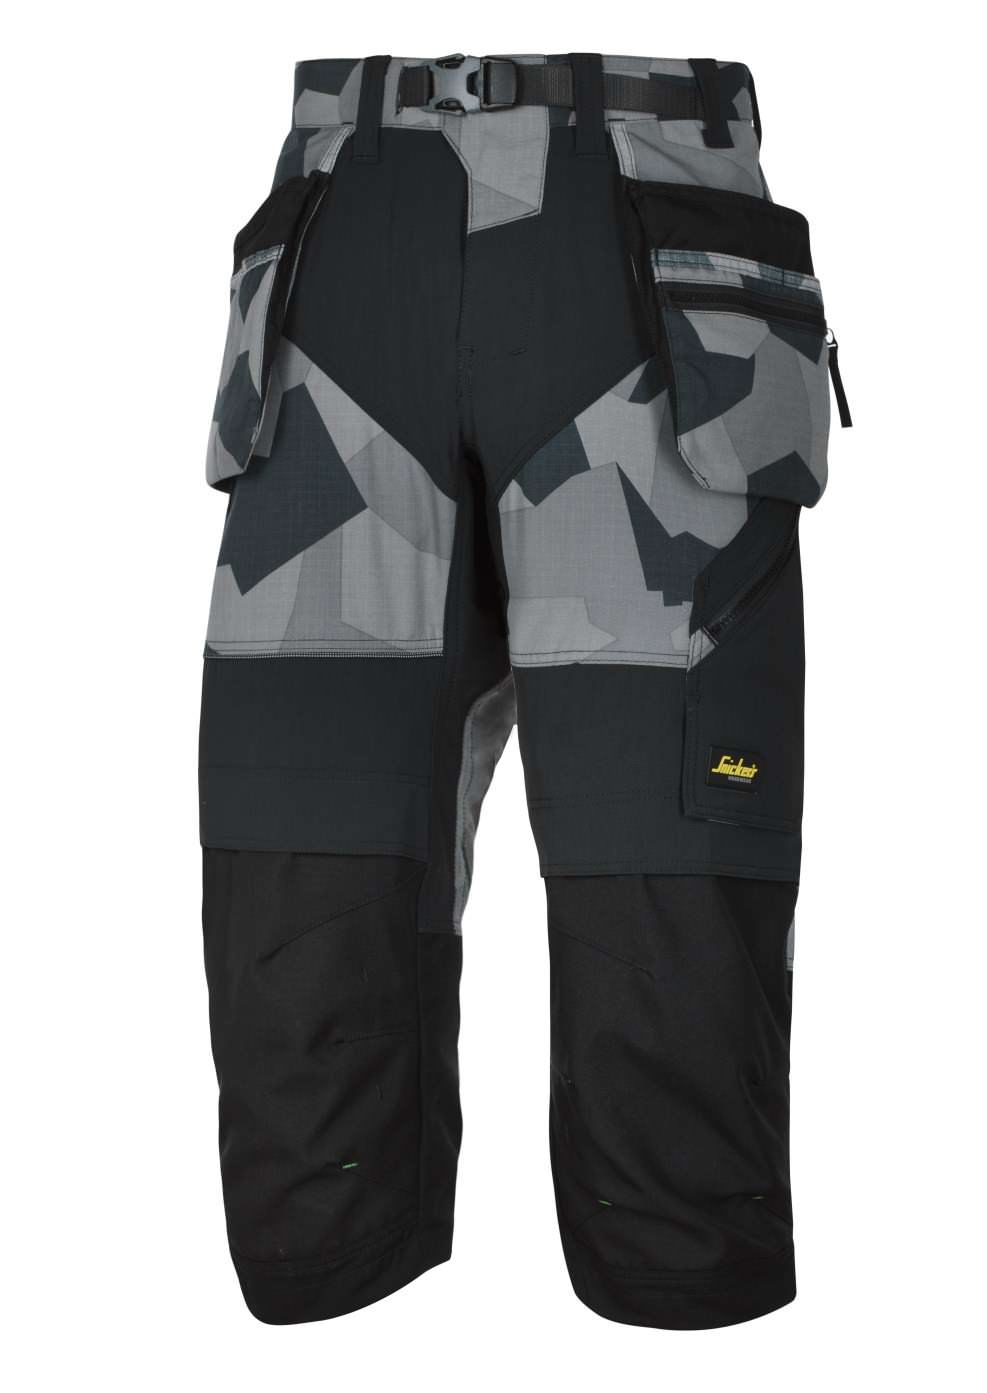 Snickers 6905 FlexiWork, Work Pirate Trousers+ Holster Pockets